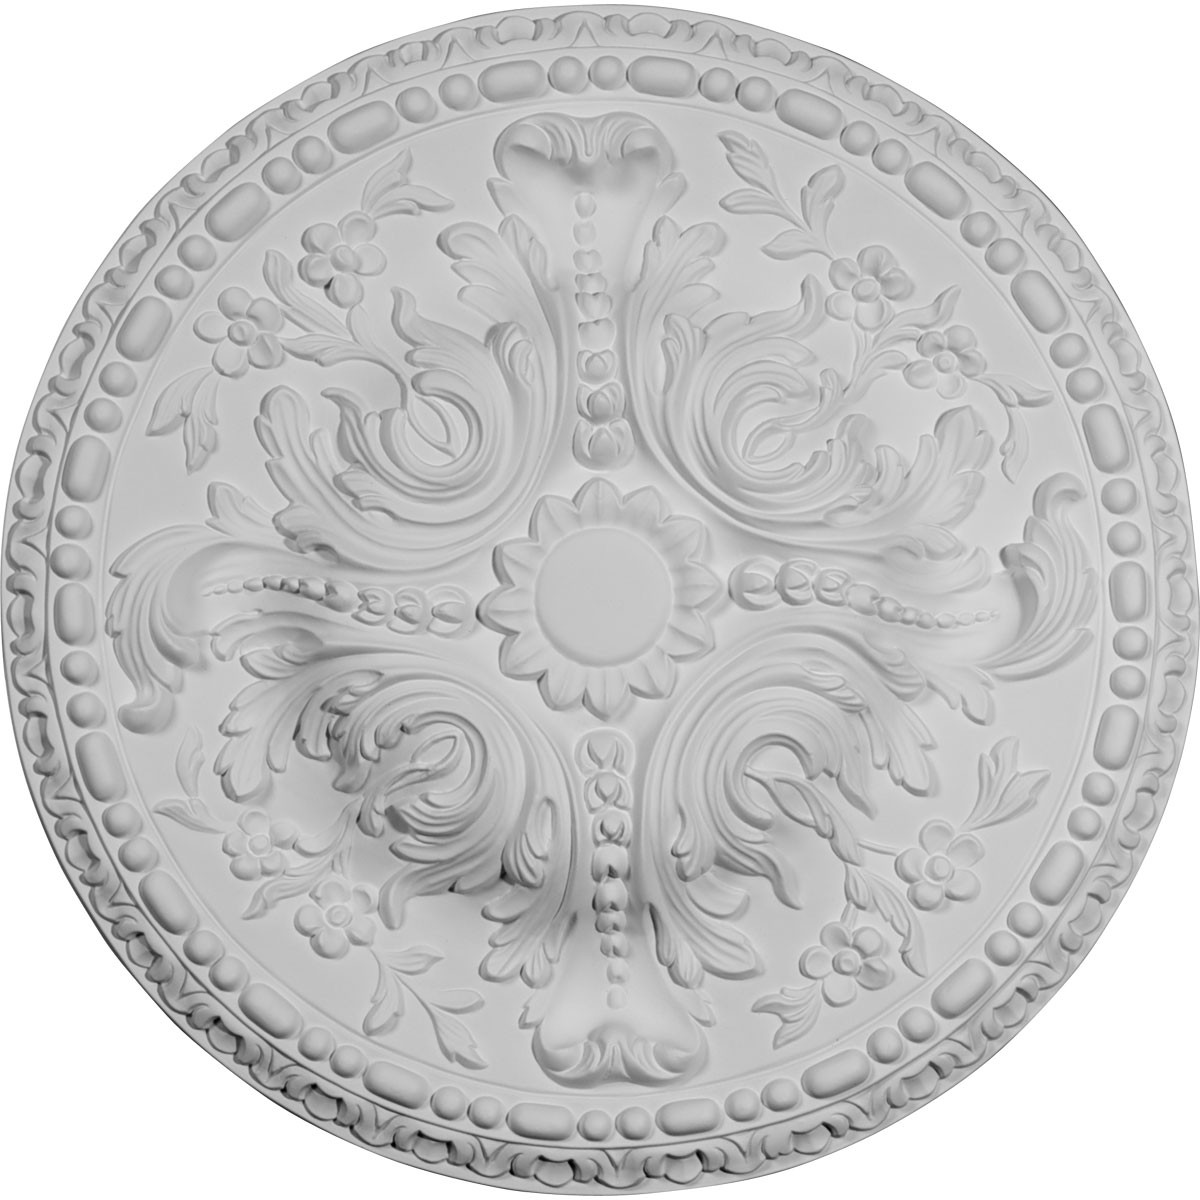 """EM-CM20AM - 19 5/8""""OD x 3/4""""P Amelia Ceiling Medallion (Fits Canopies up to 2 3/8"""")"""